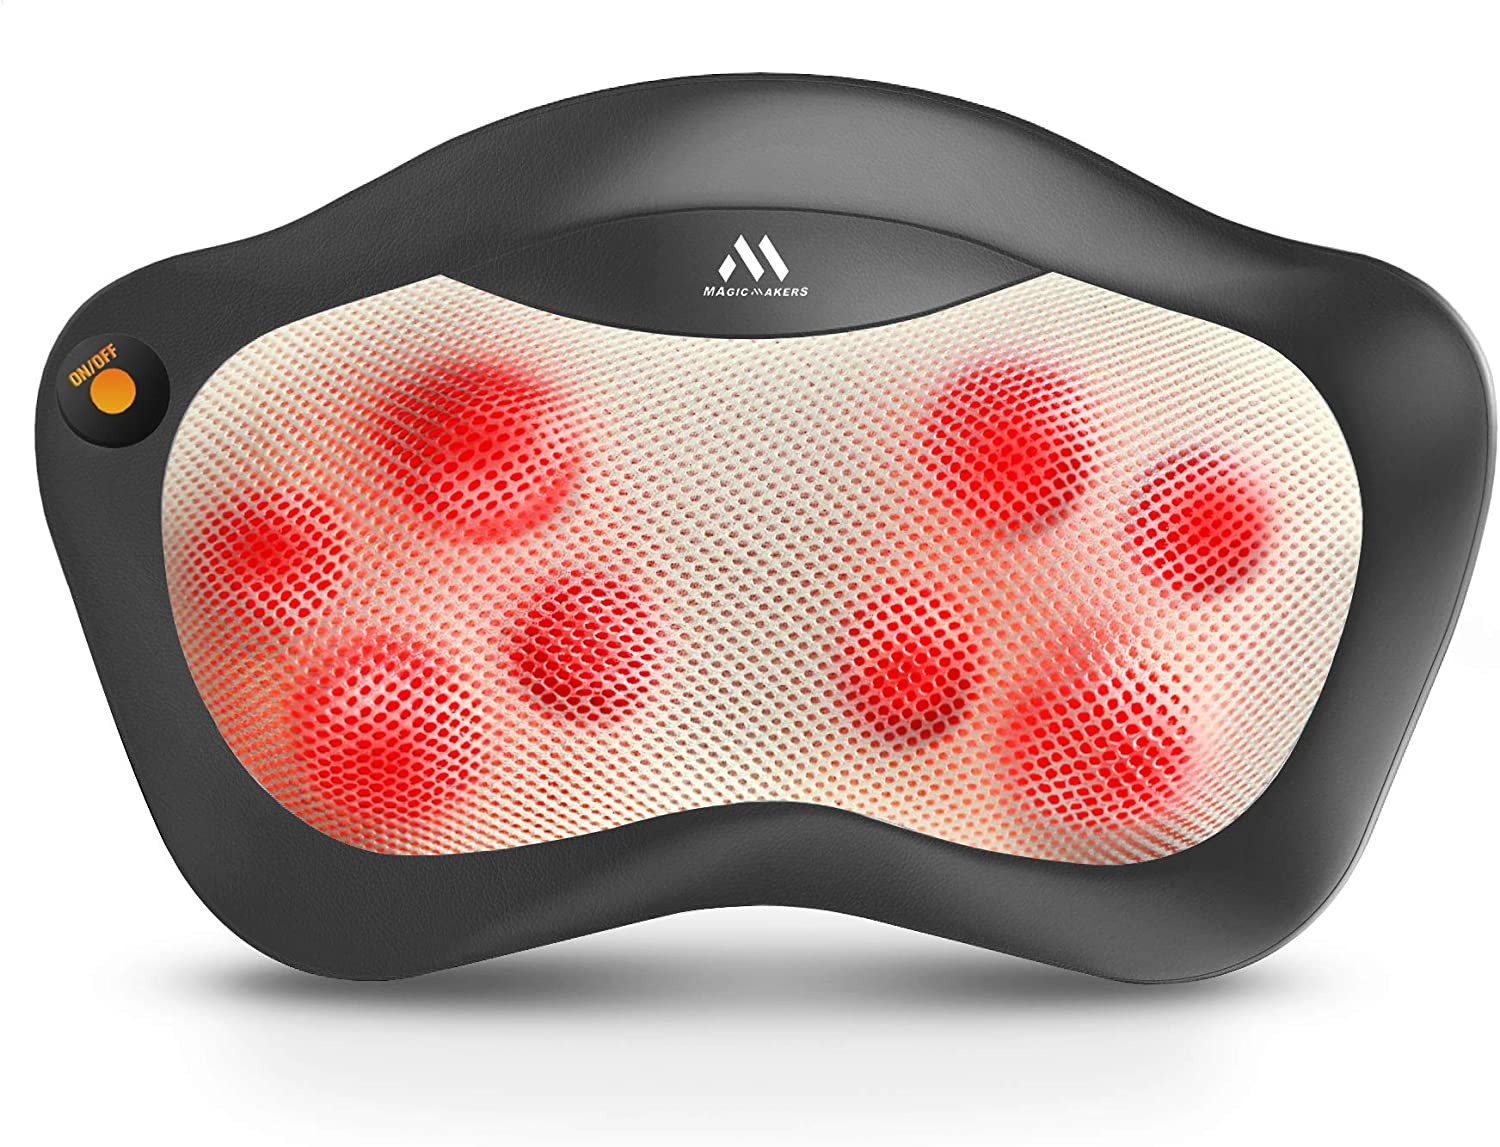 Shiatsu Neck and Back Massager – 8 Heated Rollers Kneading Massage Pillow for Shoulders, Lower Back, Calf, Legs, Foot – Relaxation Gifts for Men, Women – Shoulder and Neck Massager Present for Wife